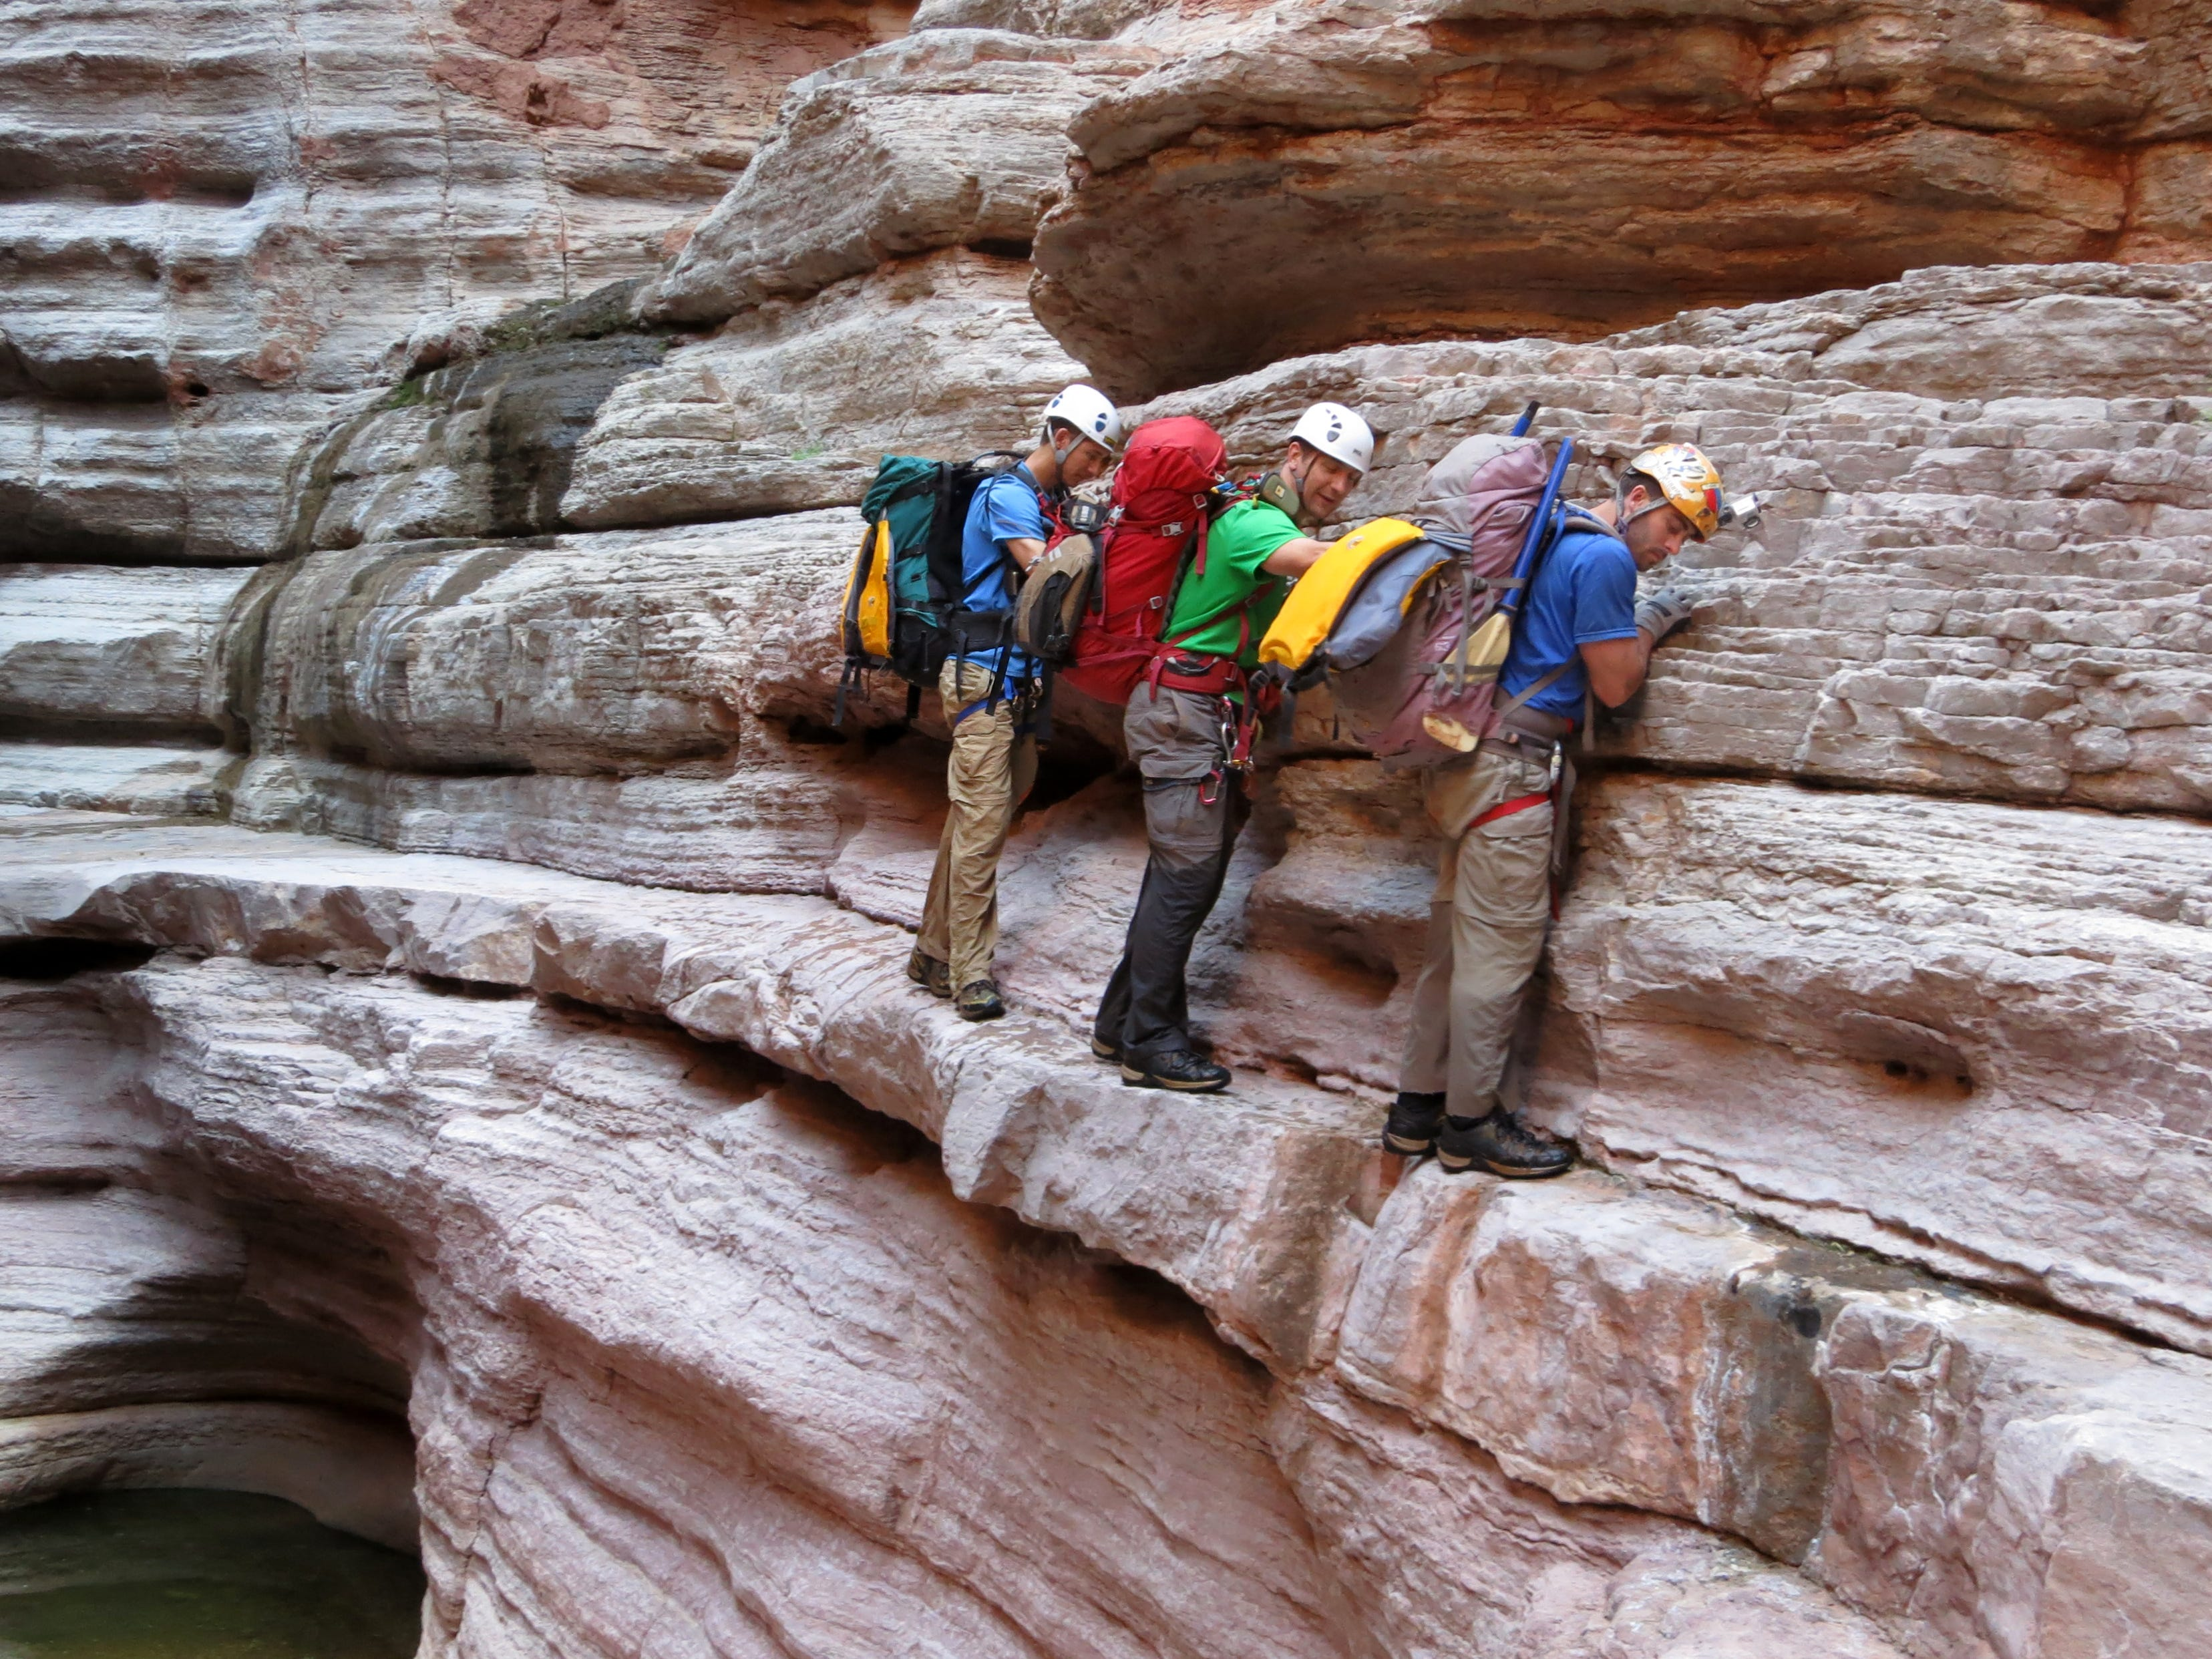 Cody Rients (from left), Mark Yarch and Eric Luth traverse muav limestone ledges while descending Olo Canyon not far from the confluence with the Colorado River in Grand Canyon National Park. Hundreds of side canyon drainages meet the Colorado River in Grand Canyon and offer a glimpse into something not impacted by Glen Canyon Dam.